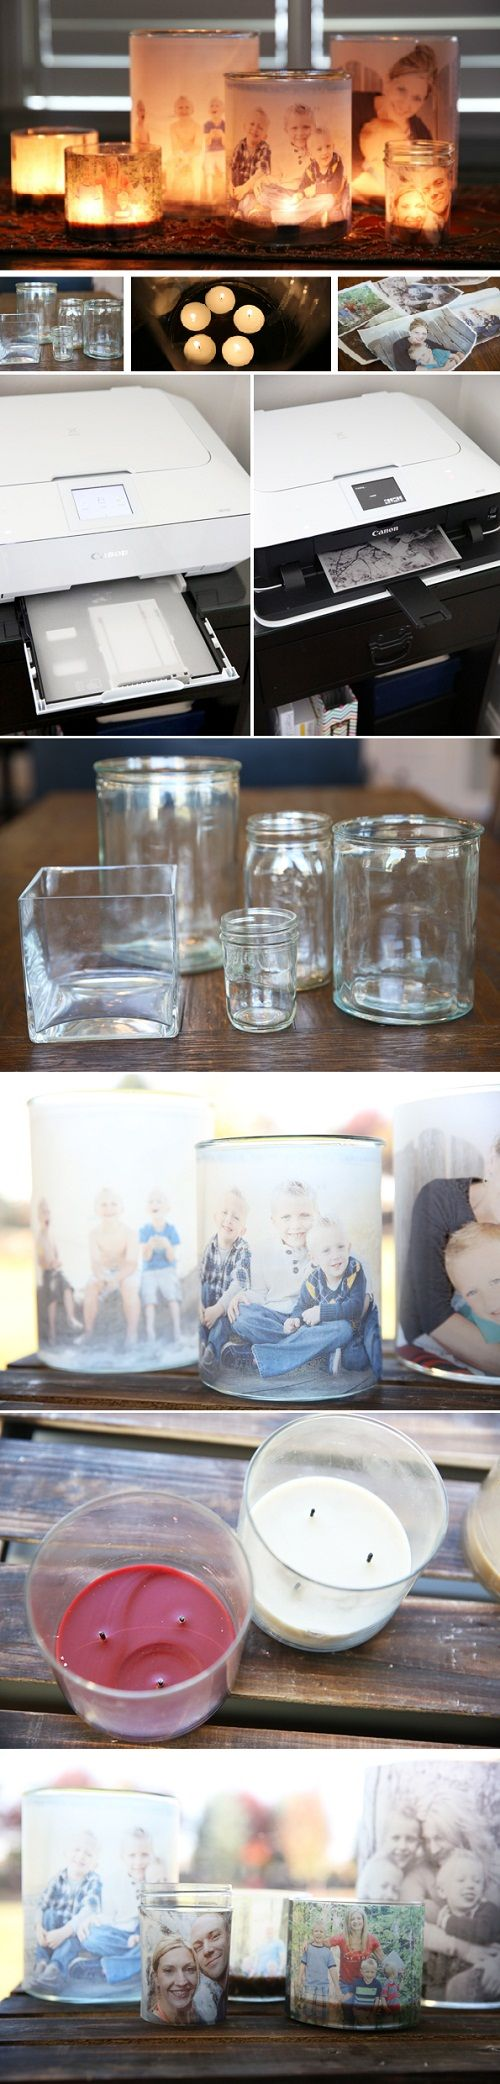 DIY Glowing Photo Luminaries #pin_it #diy #sustentabilidade @mundodascasas See more here: http://www.mundodascasas.com.br